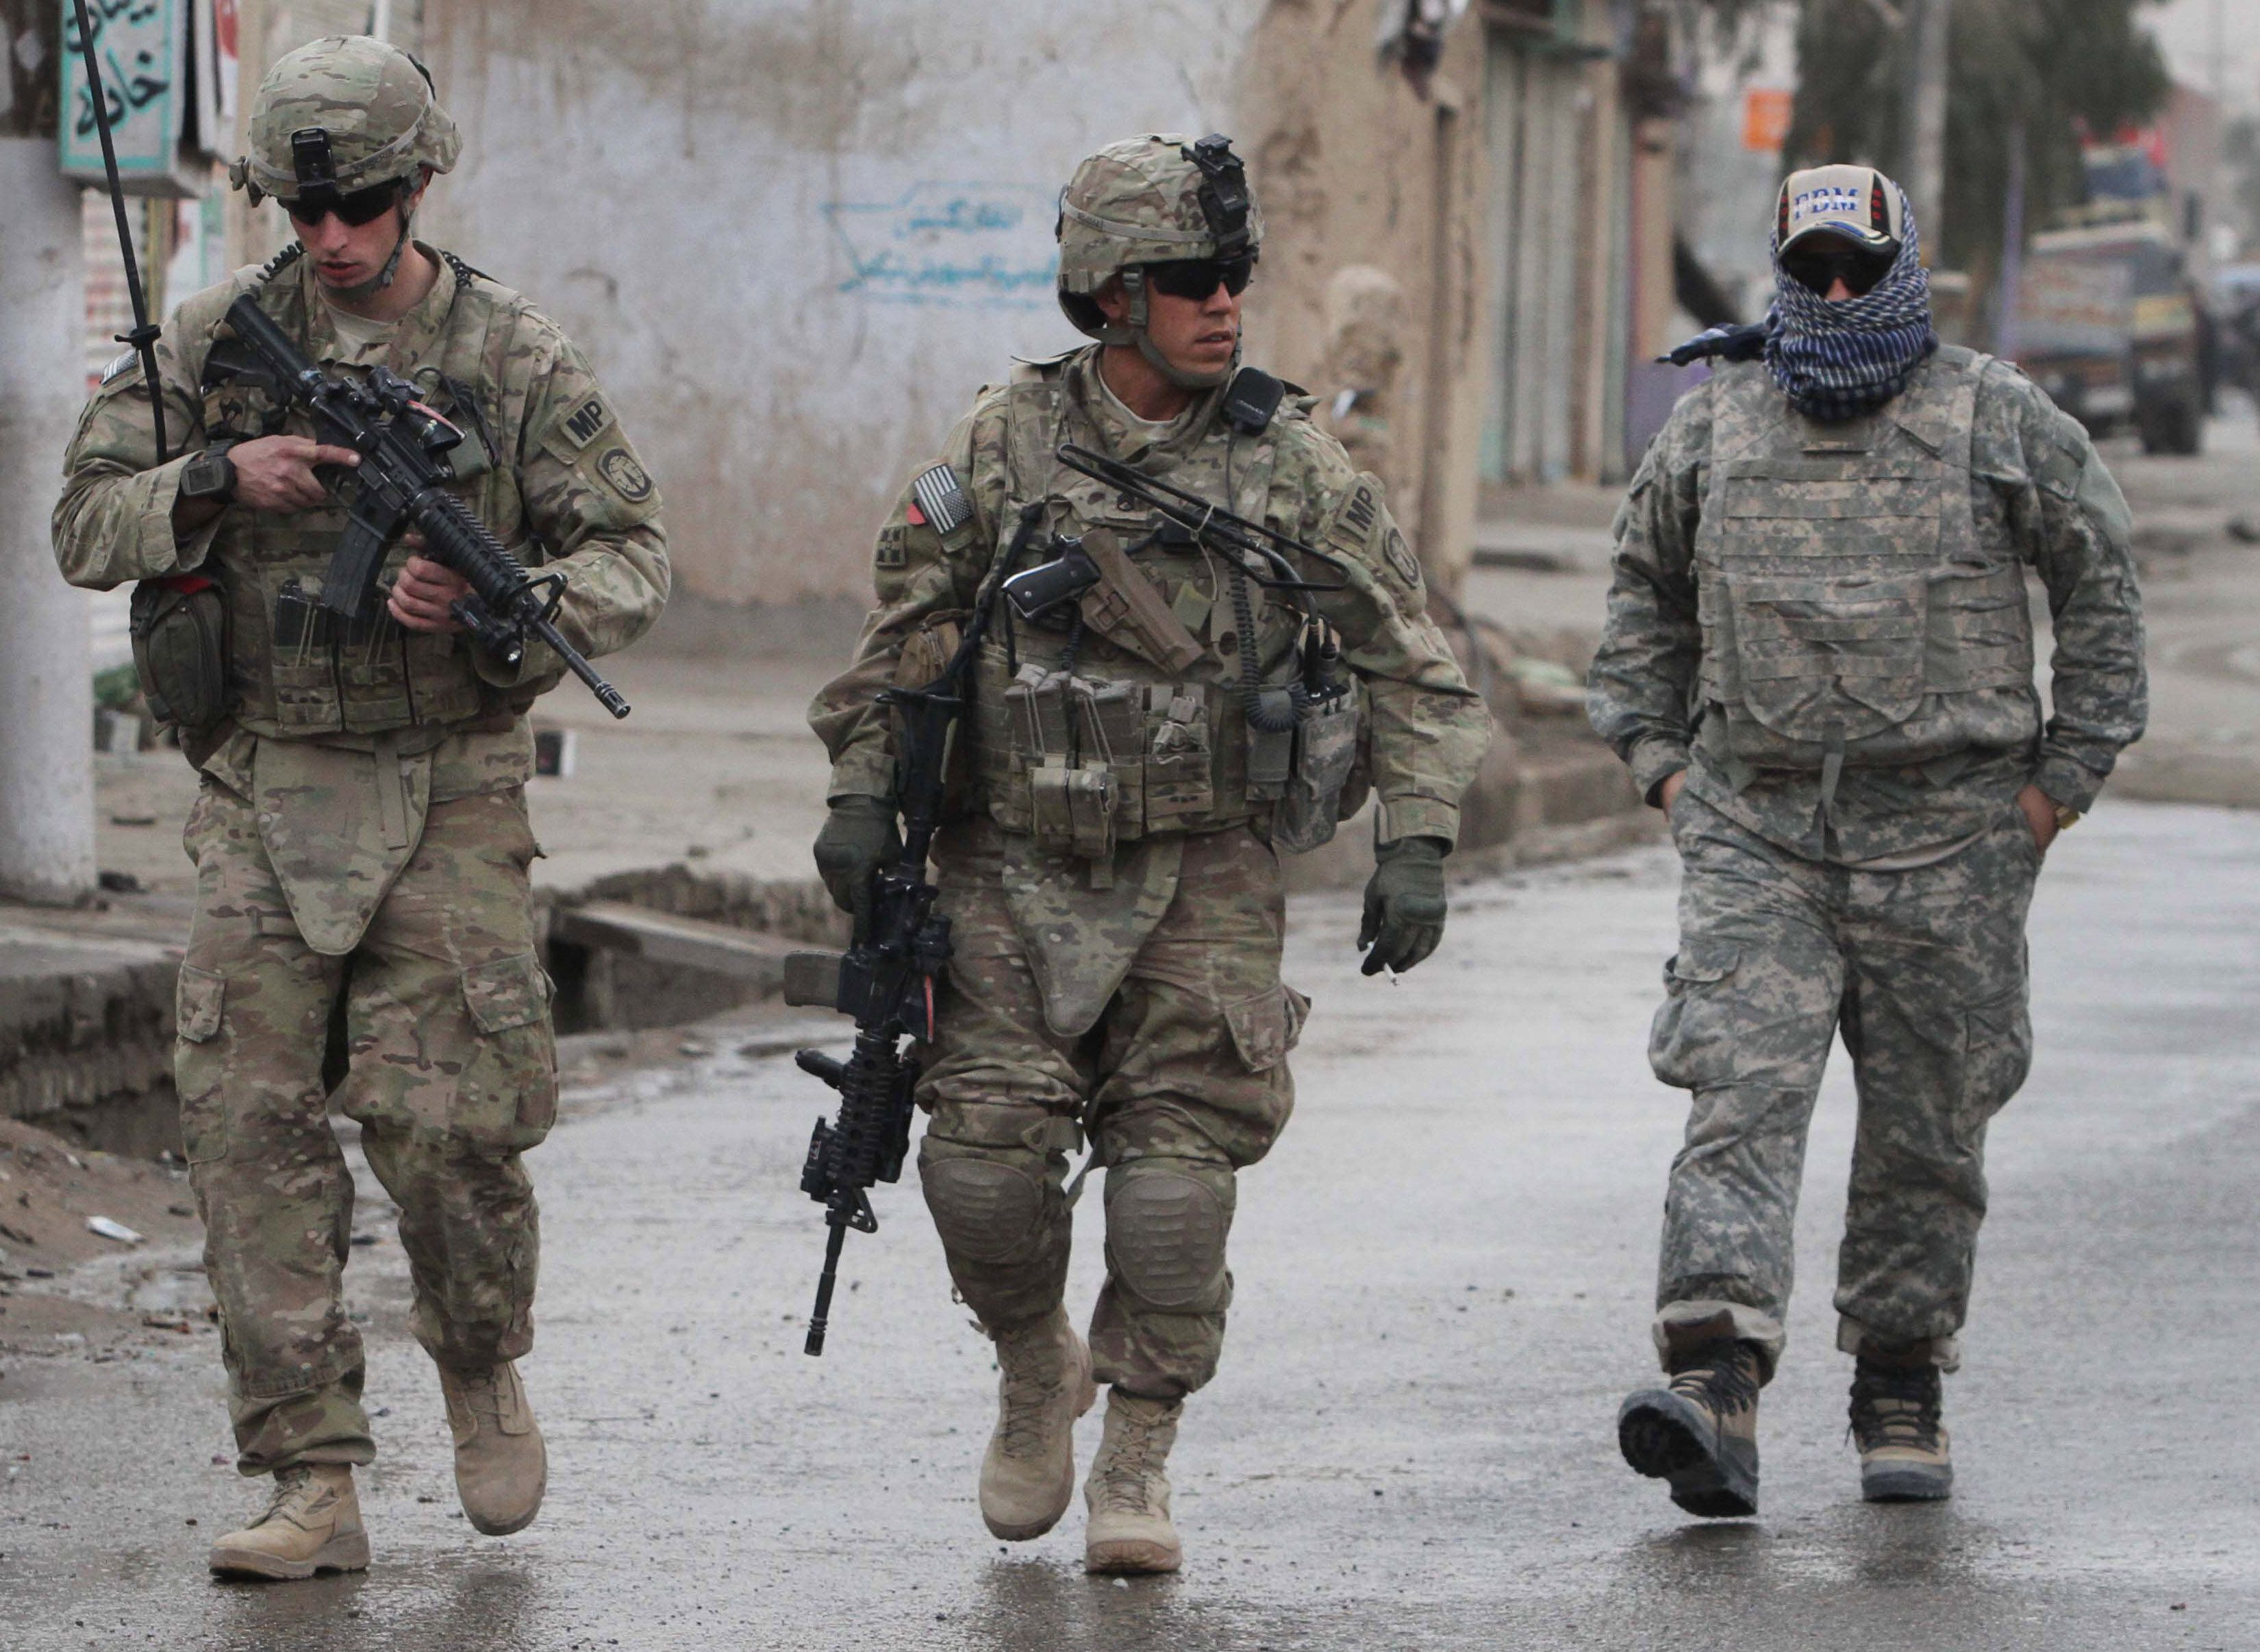 U.S. soldiers walk with their Afghan translator near the scene of a suicide attack in Kandahar, south of Kabul, Afghanistan, Tuesday, Jan. 3, 2012. A suicide bomber driving a motorcycle killed four civilians and a police officer in southern Afghanistan's Kandahar city on Tuesday, police said.  (AP Photo/Allauddin Khan)